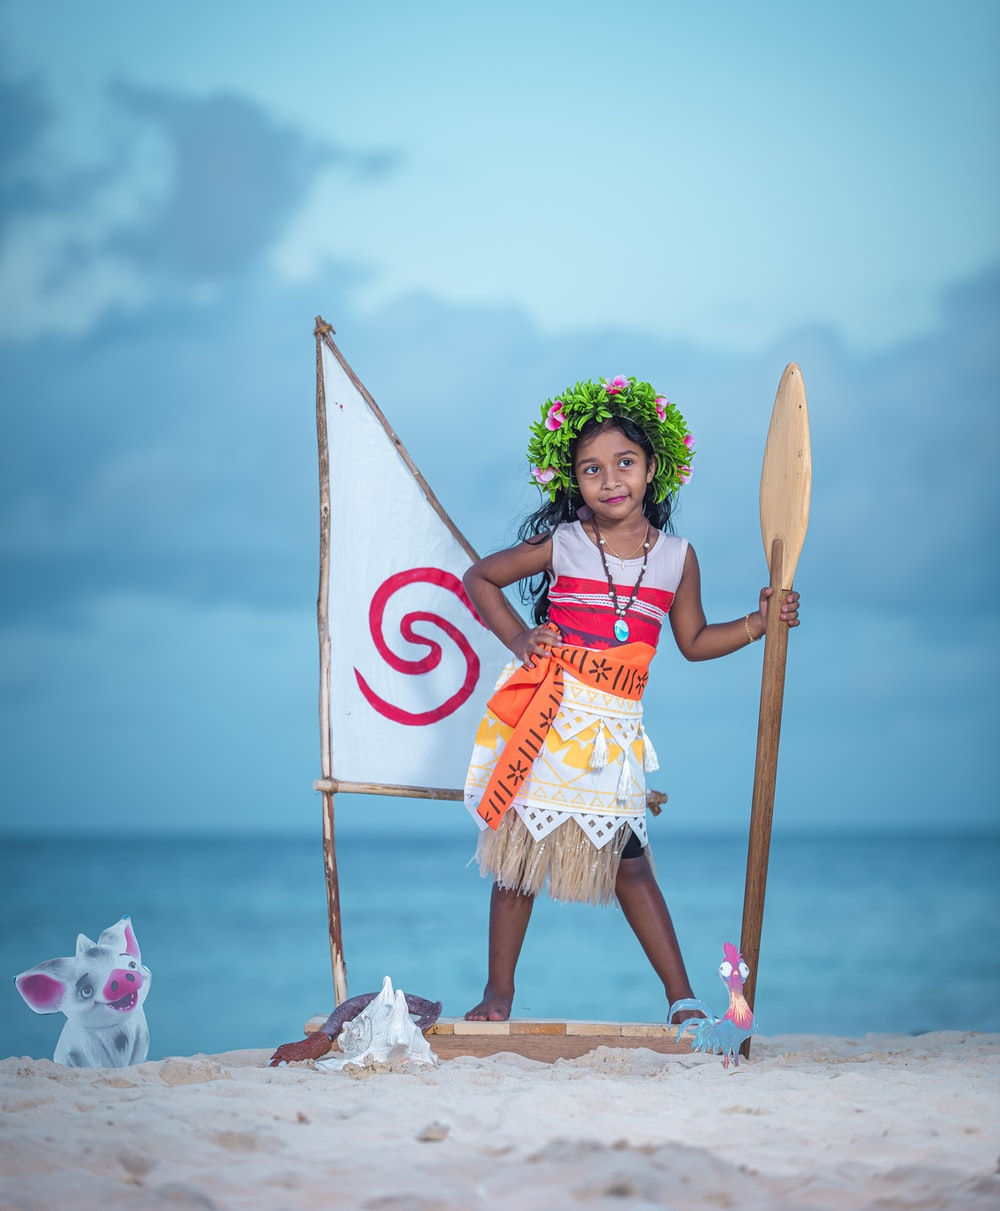 woman in red and white dress holding brown wooden stick standing on white sand during daytime